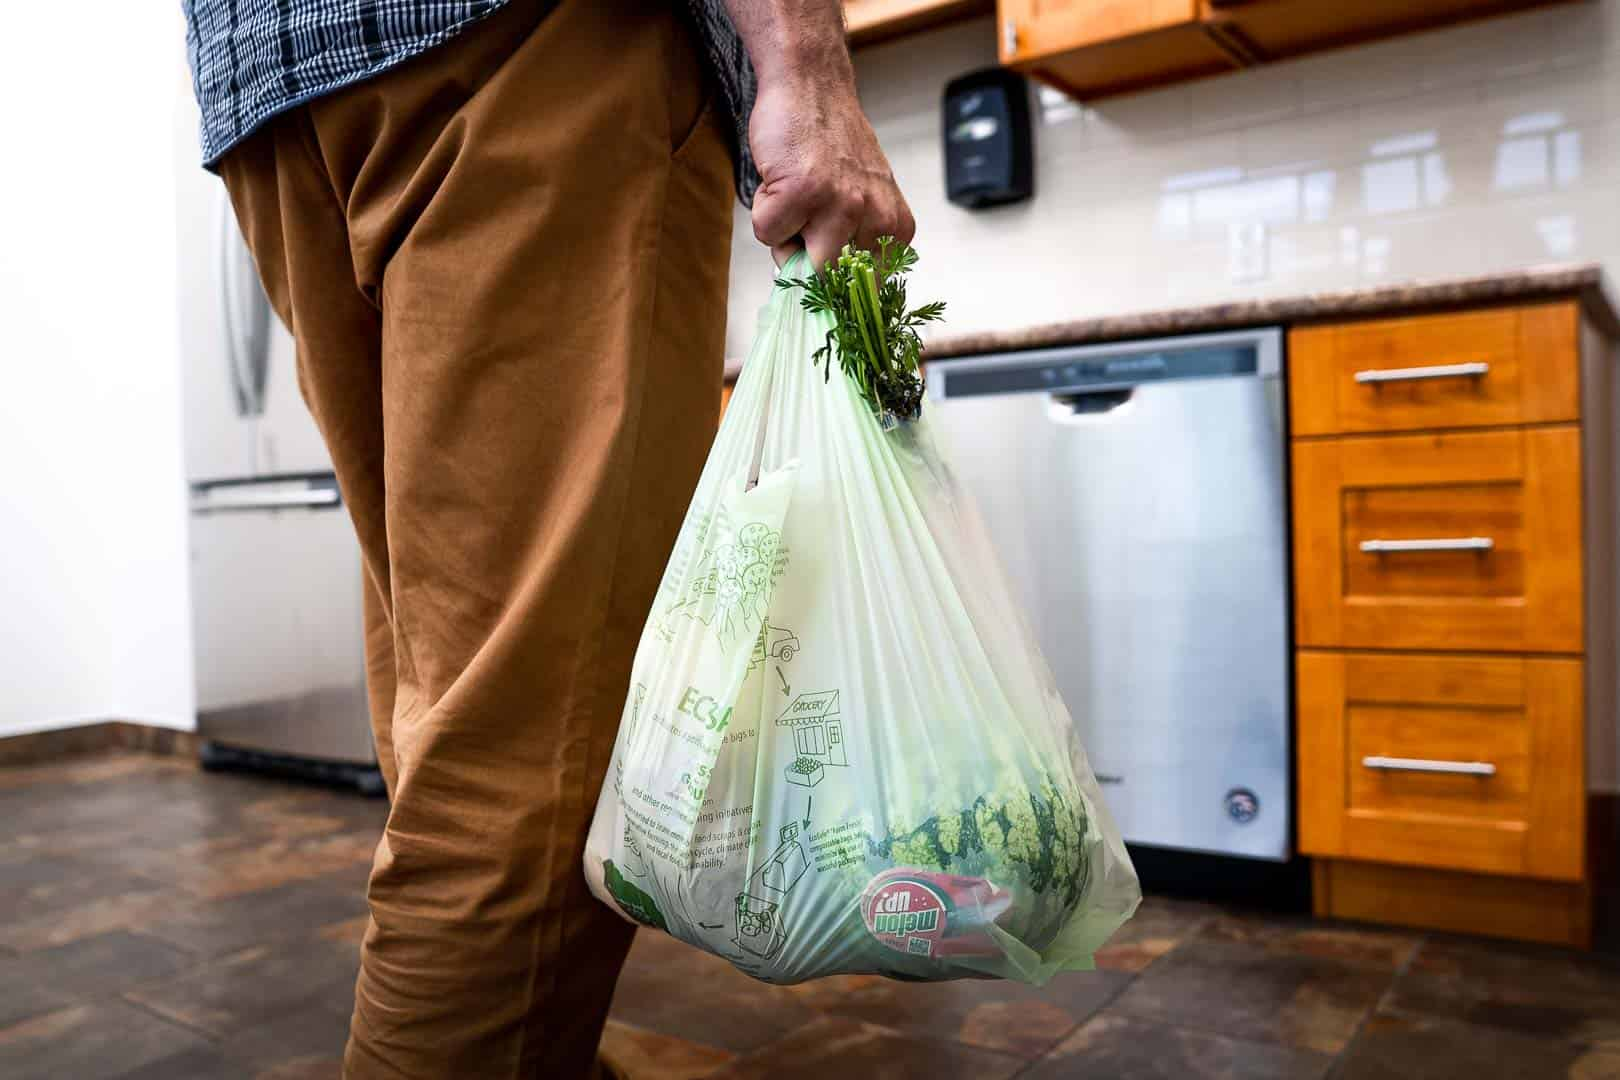 Ecosafe Green   Zero waste - produce in bags